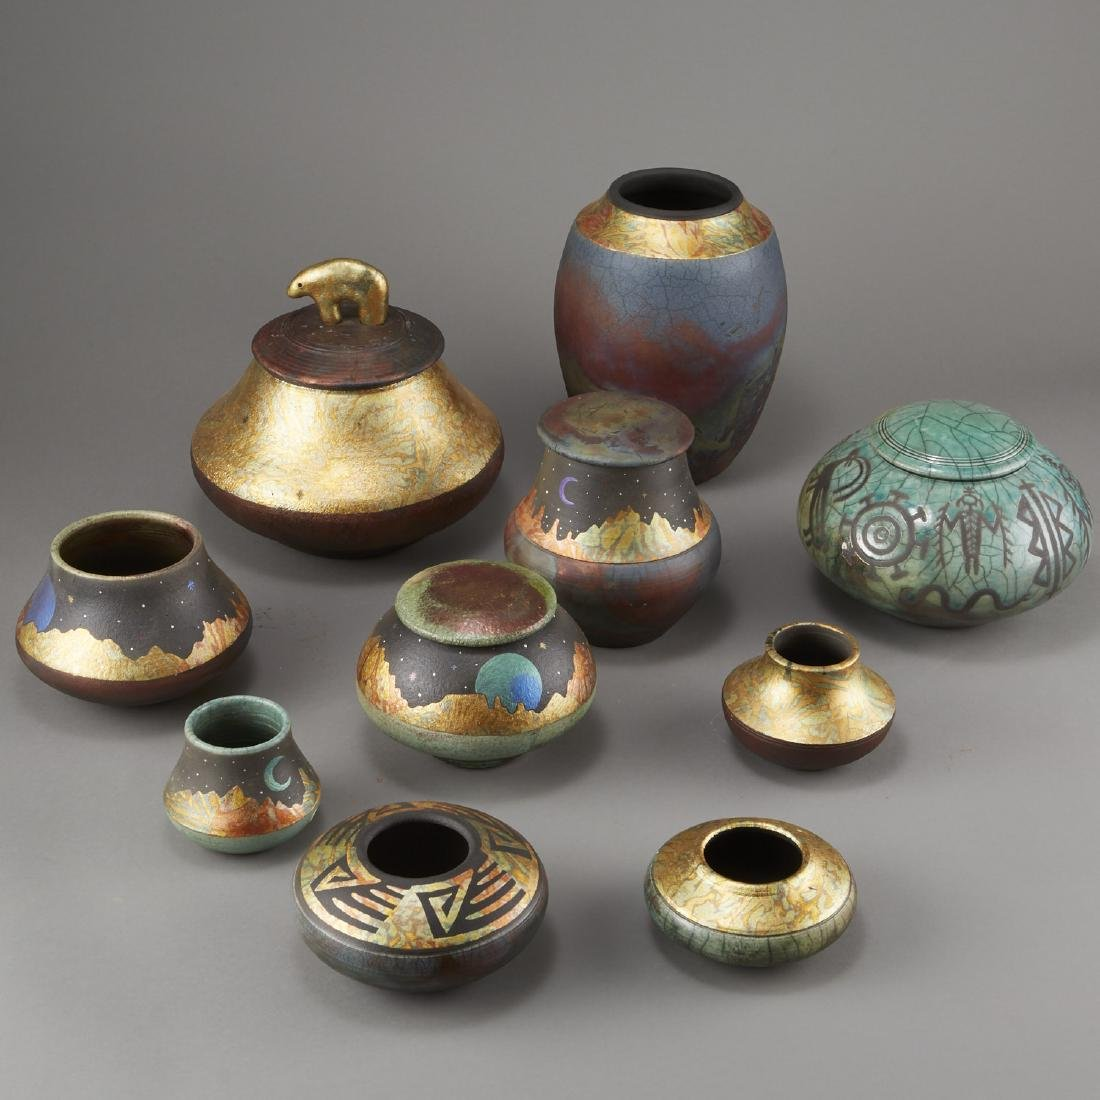 Group of 10 Rick Loewenkamp Raku Pottery